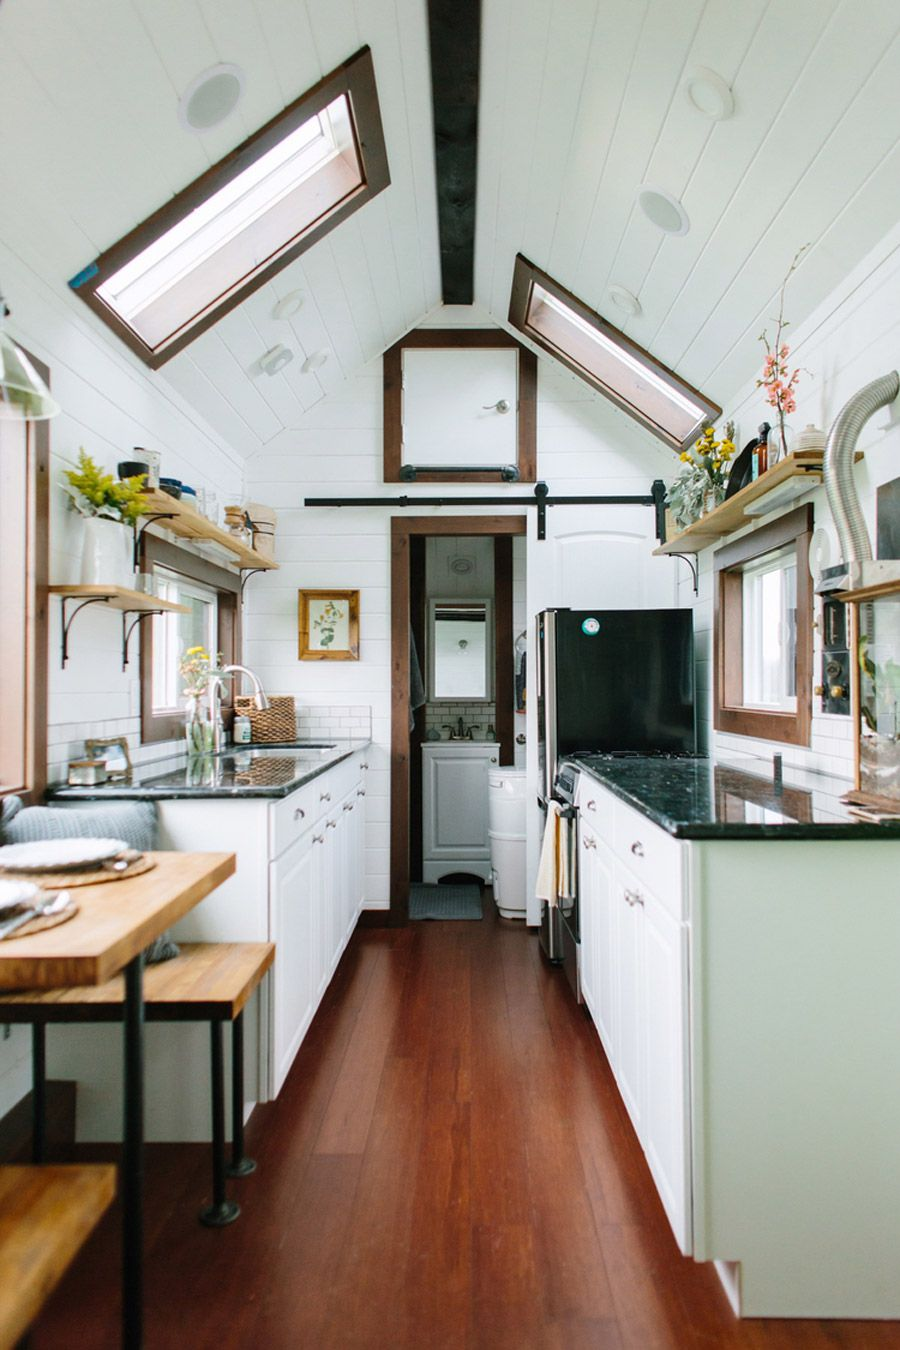 View toward kitchen the alpha tiny home by new frontier tiny homes - A Luxury Tiny House On Wheels In Portland Oregon Built By Tiny Heirloom Tiny House Swoon See More Of Tiny Heirloom 2 At Tiny House Swoon